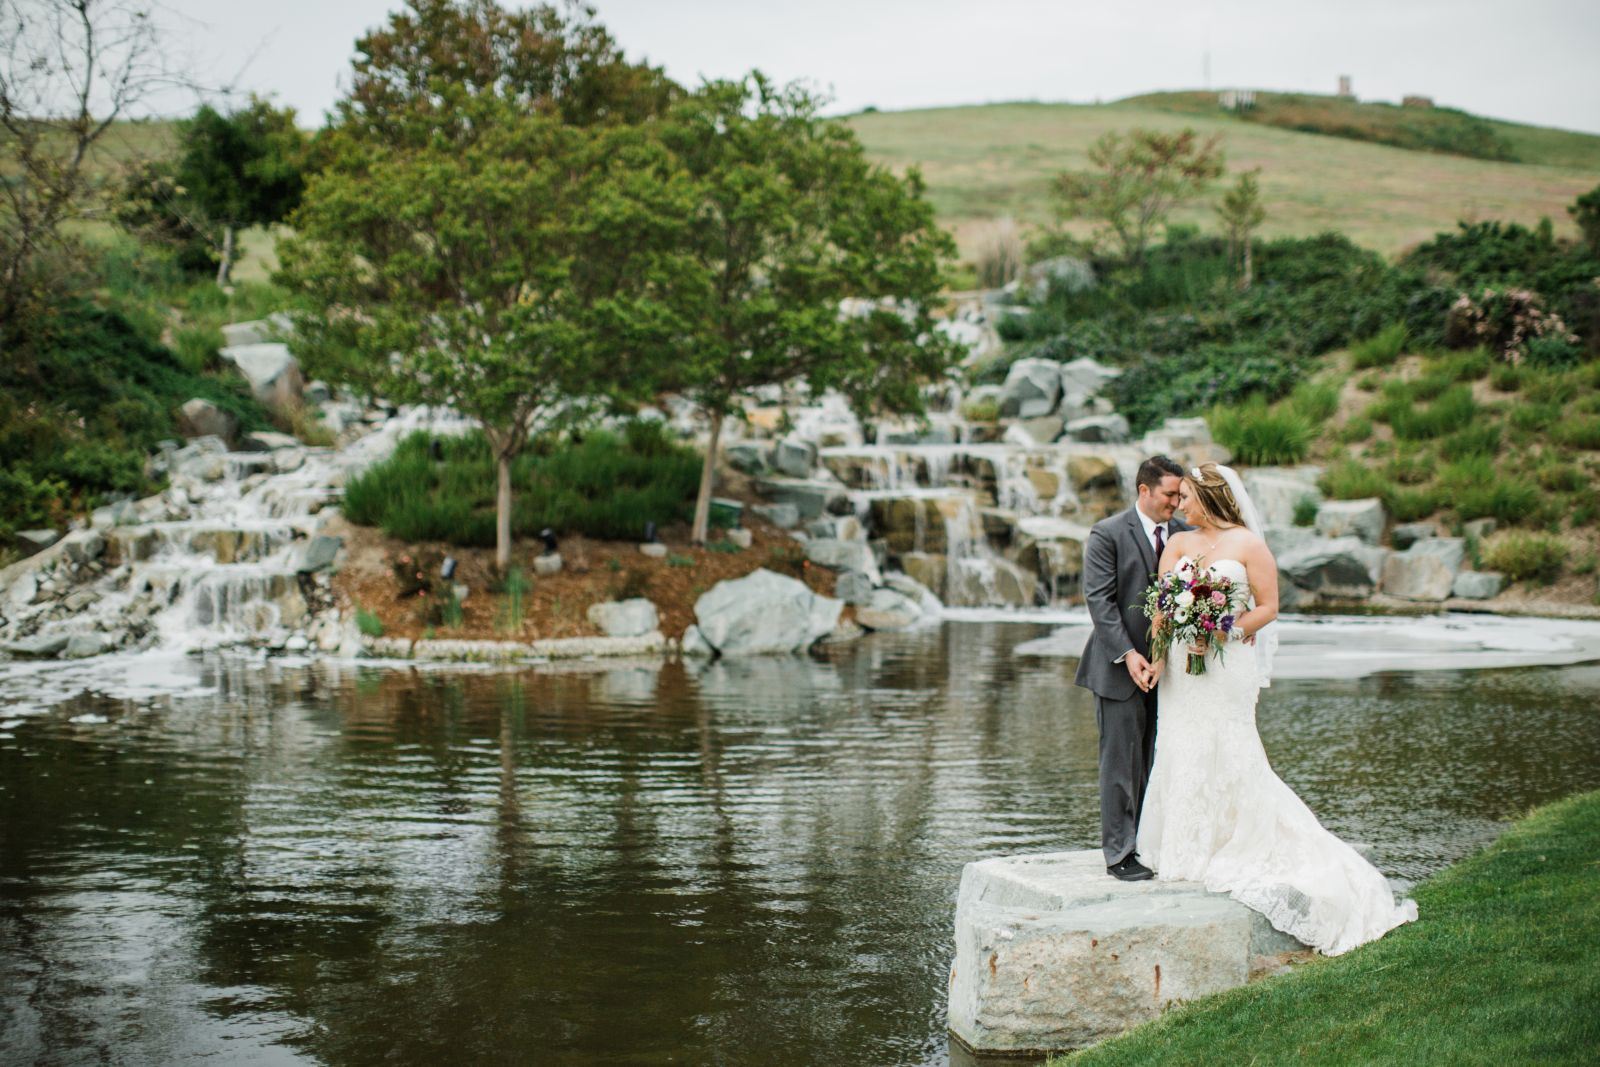 Wedding couple in front of Water Feature Dublin Ranch Golf Course